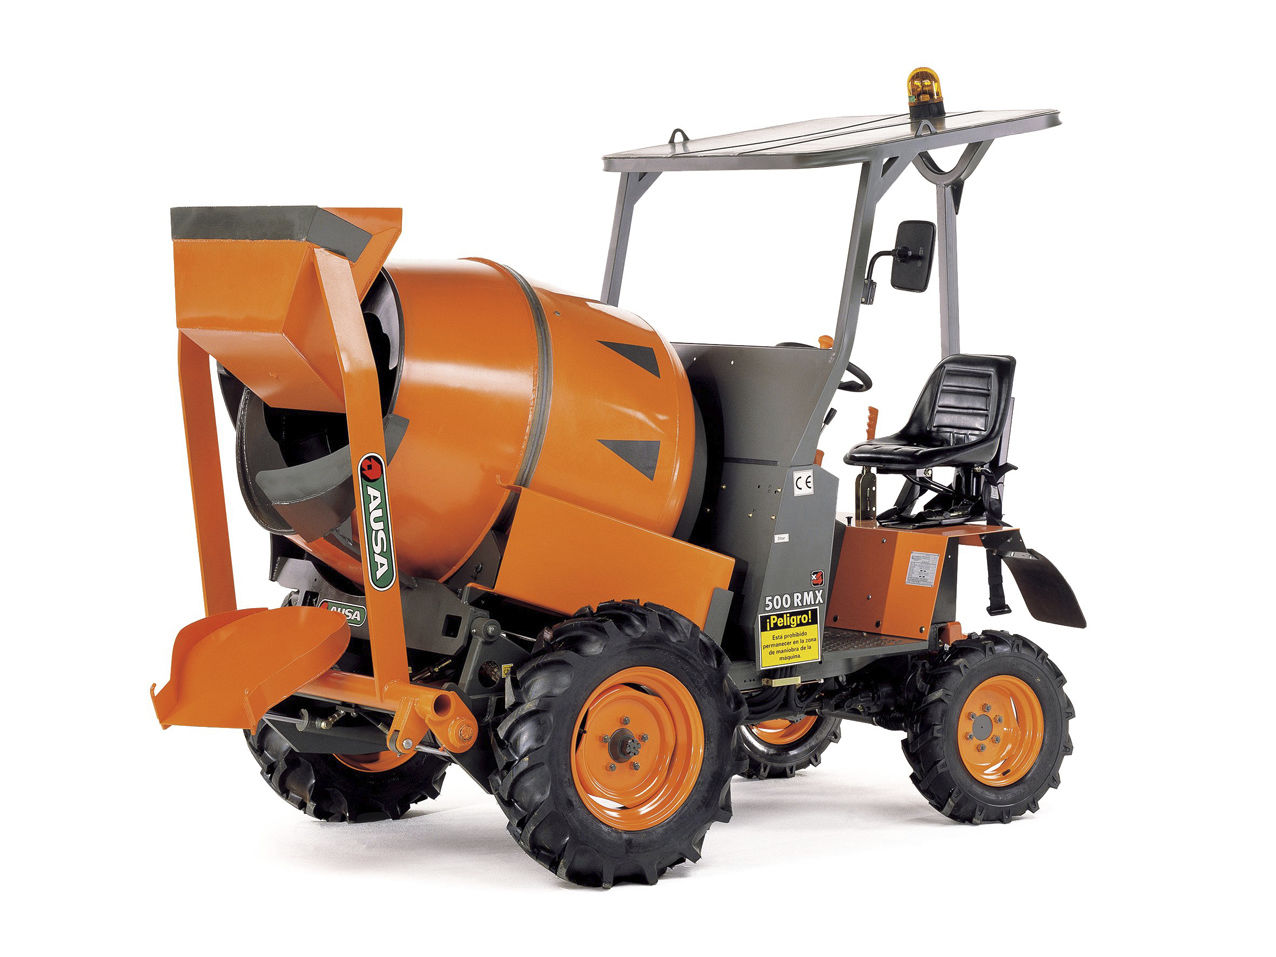 AUSA self-loading concrete mixer